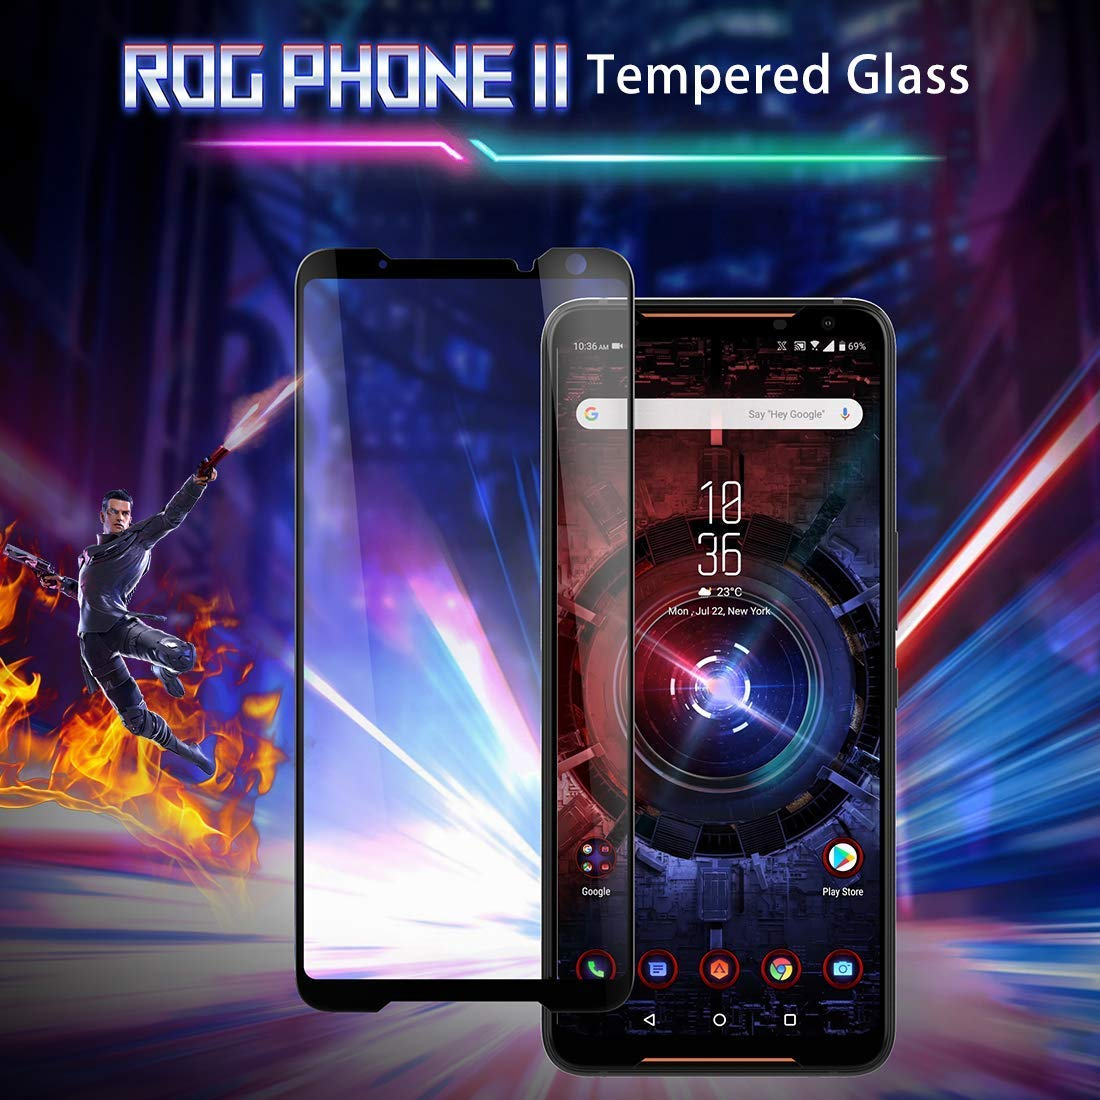 ELICA 21D Perfect Fitting Invisible Edge to Edge Tempered Glass for ASUS ROG Phone II/Asus Rog 2 (ZS660KL) 6.59